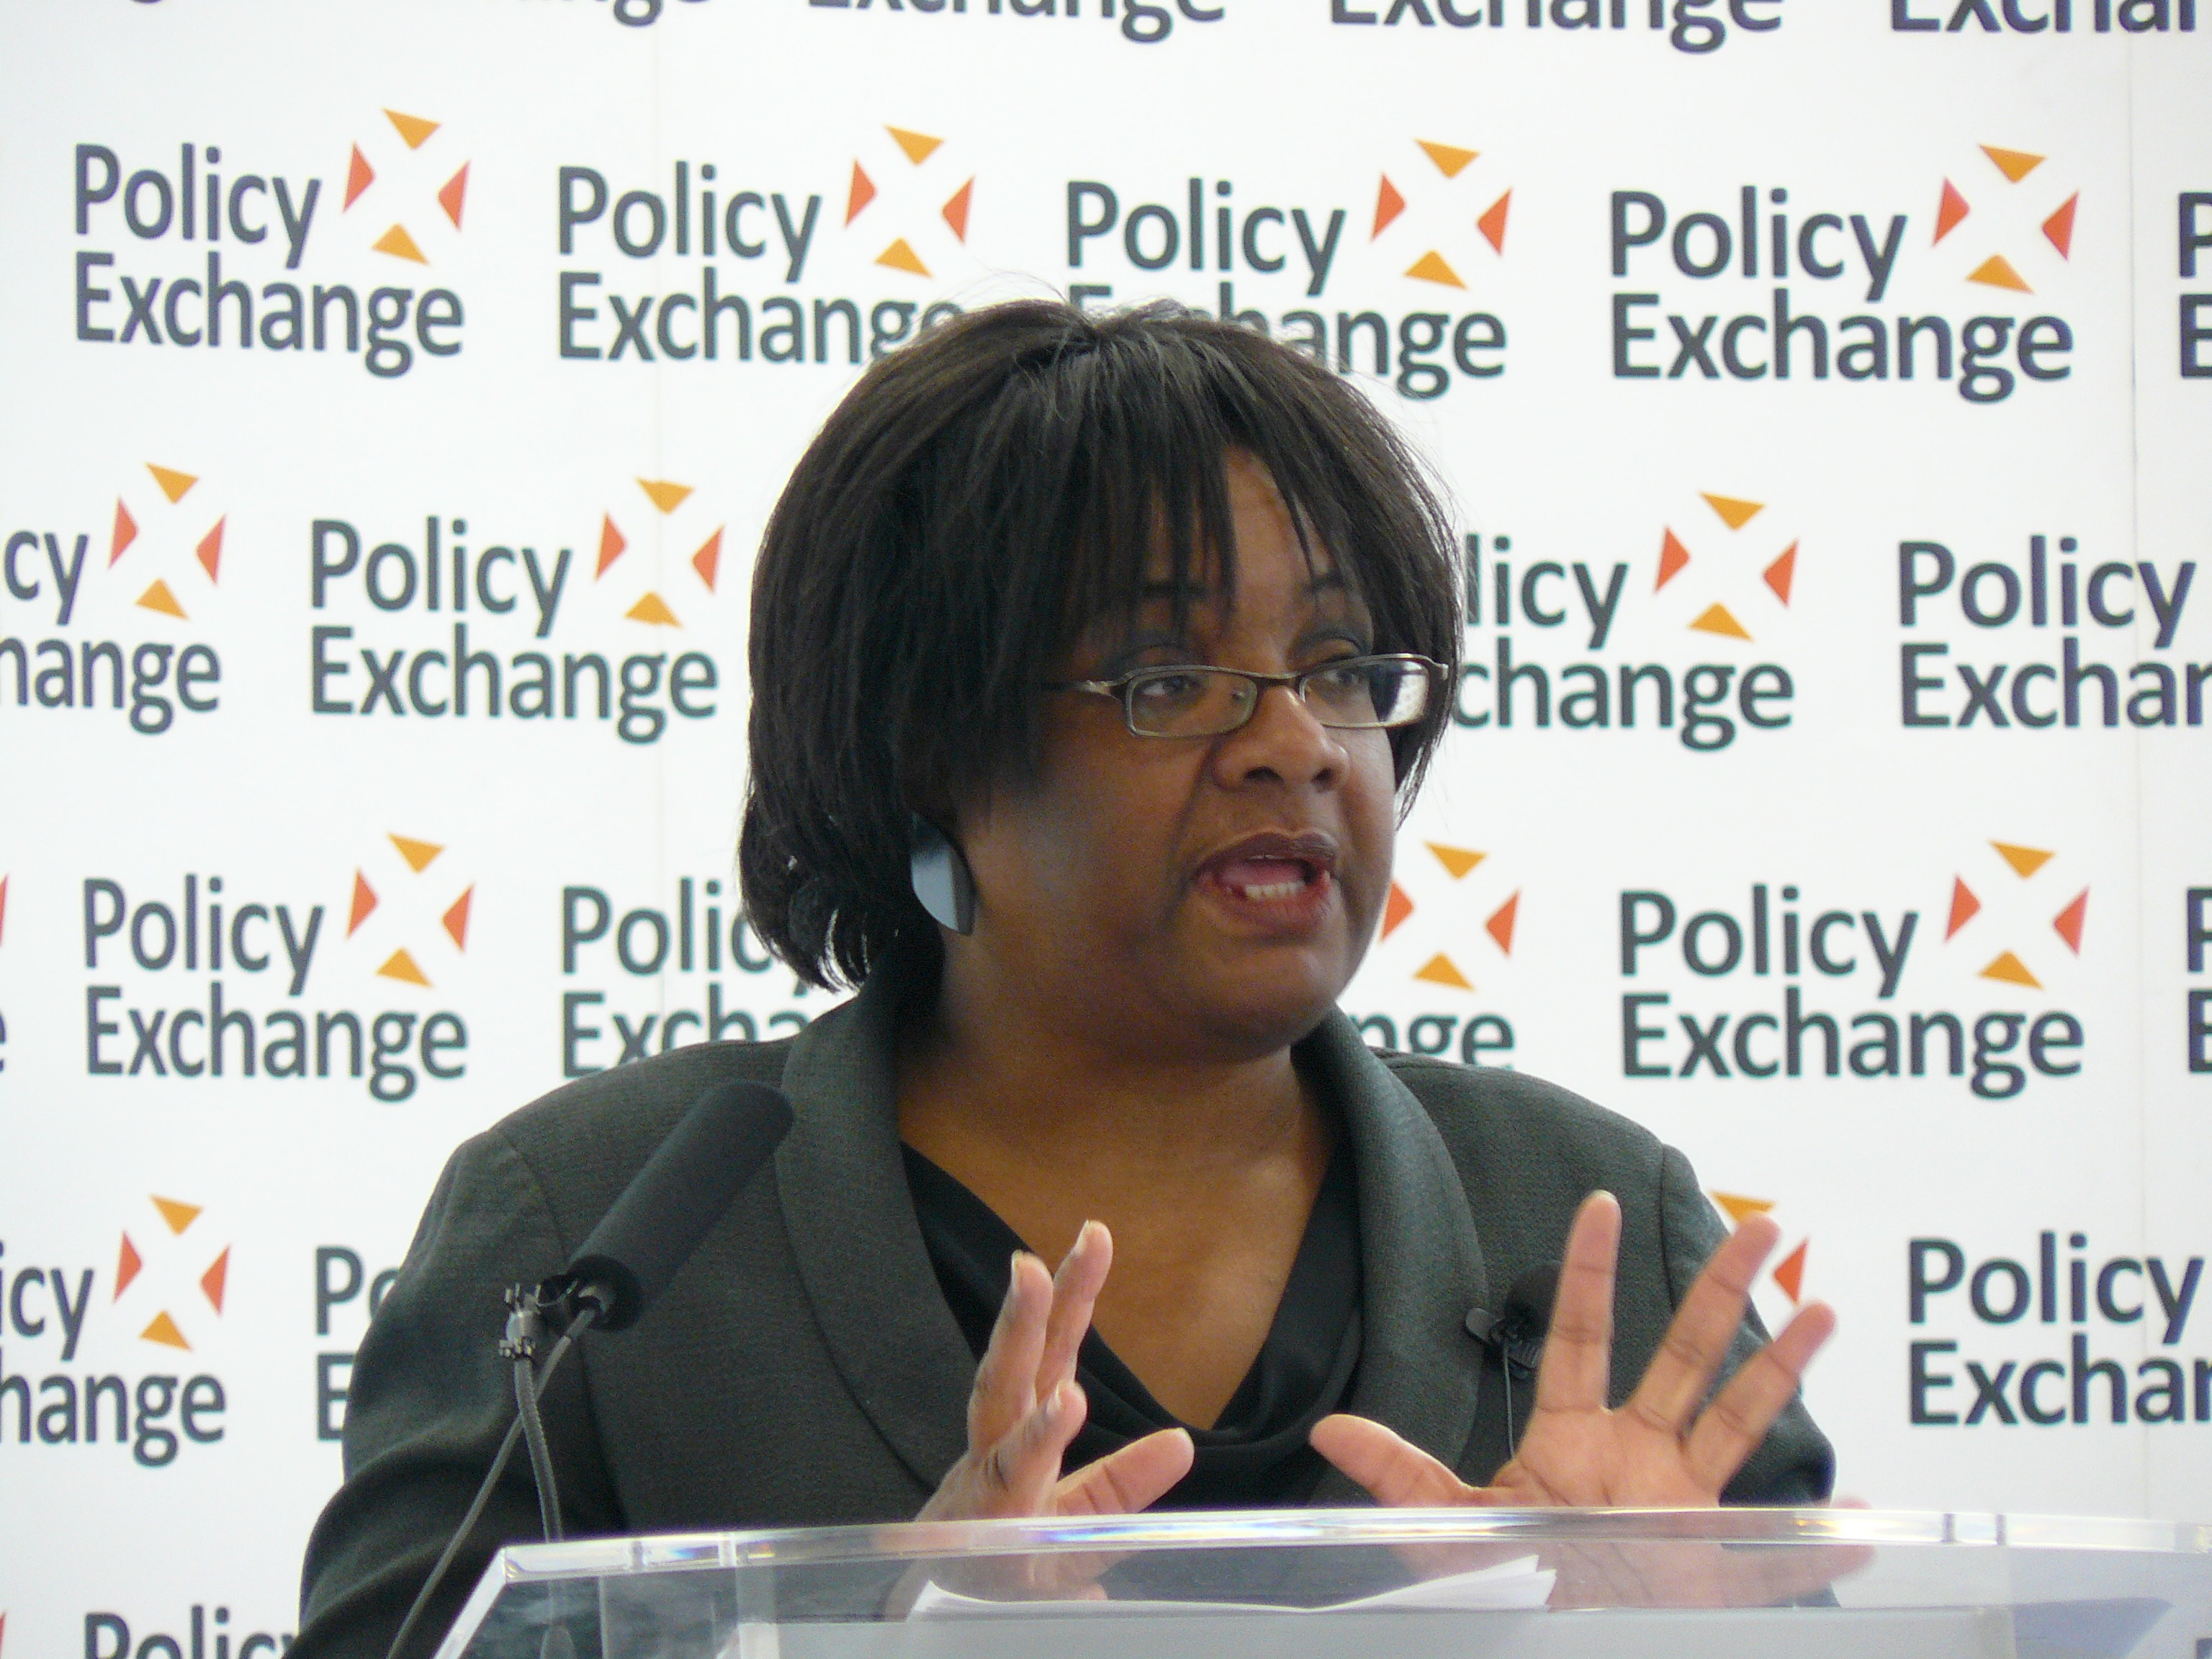 Diane Abbott MP delivering her keynote speech 'Children and public health_ putting families at the heart of policy' _ Flickr - Photo Sharing!